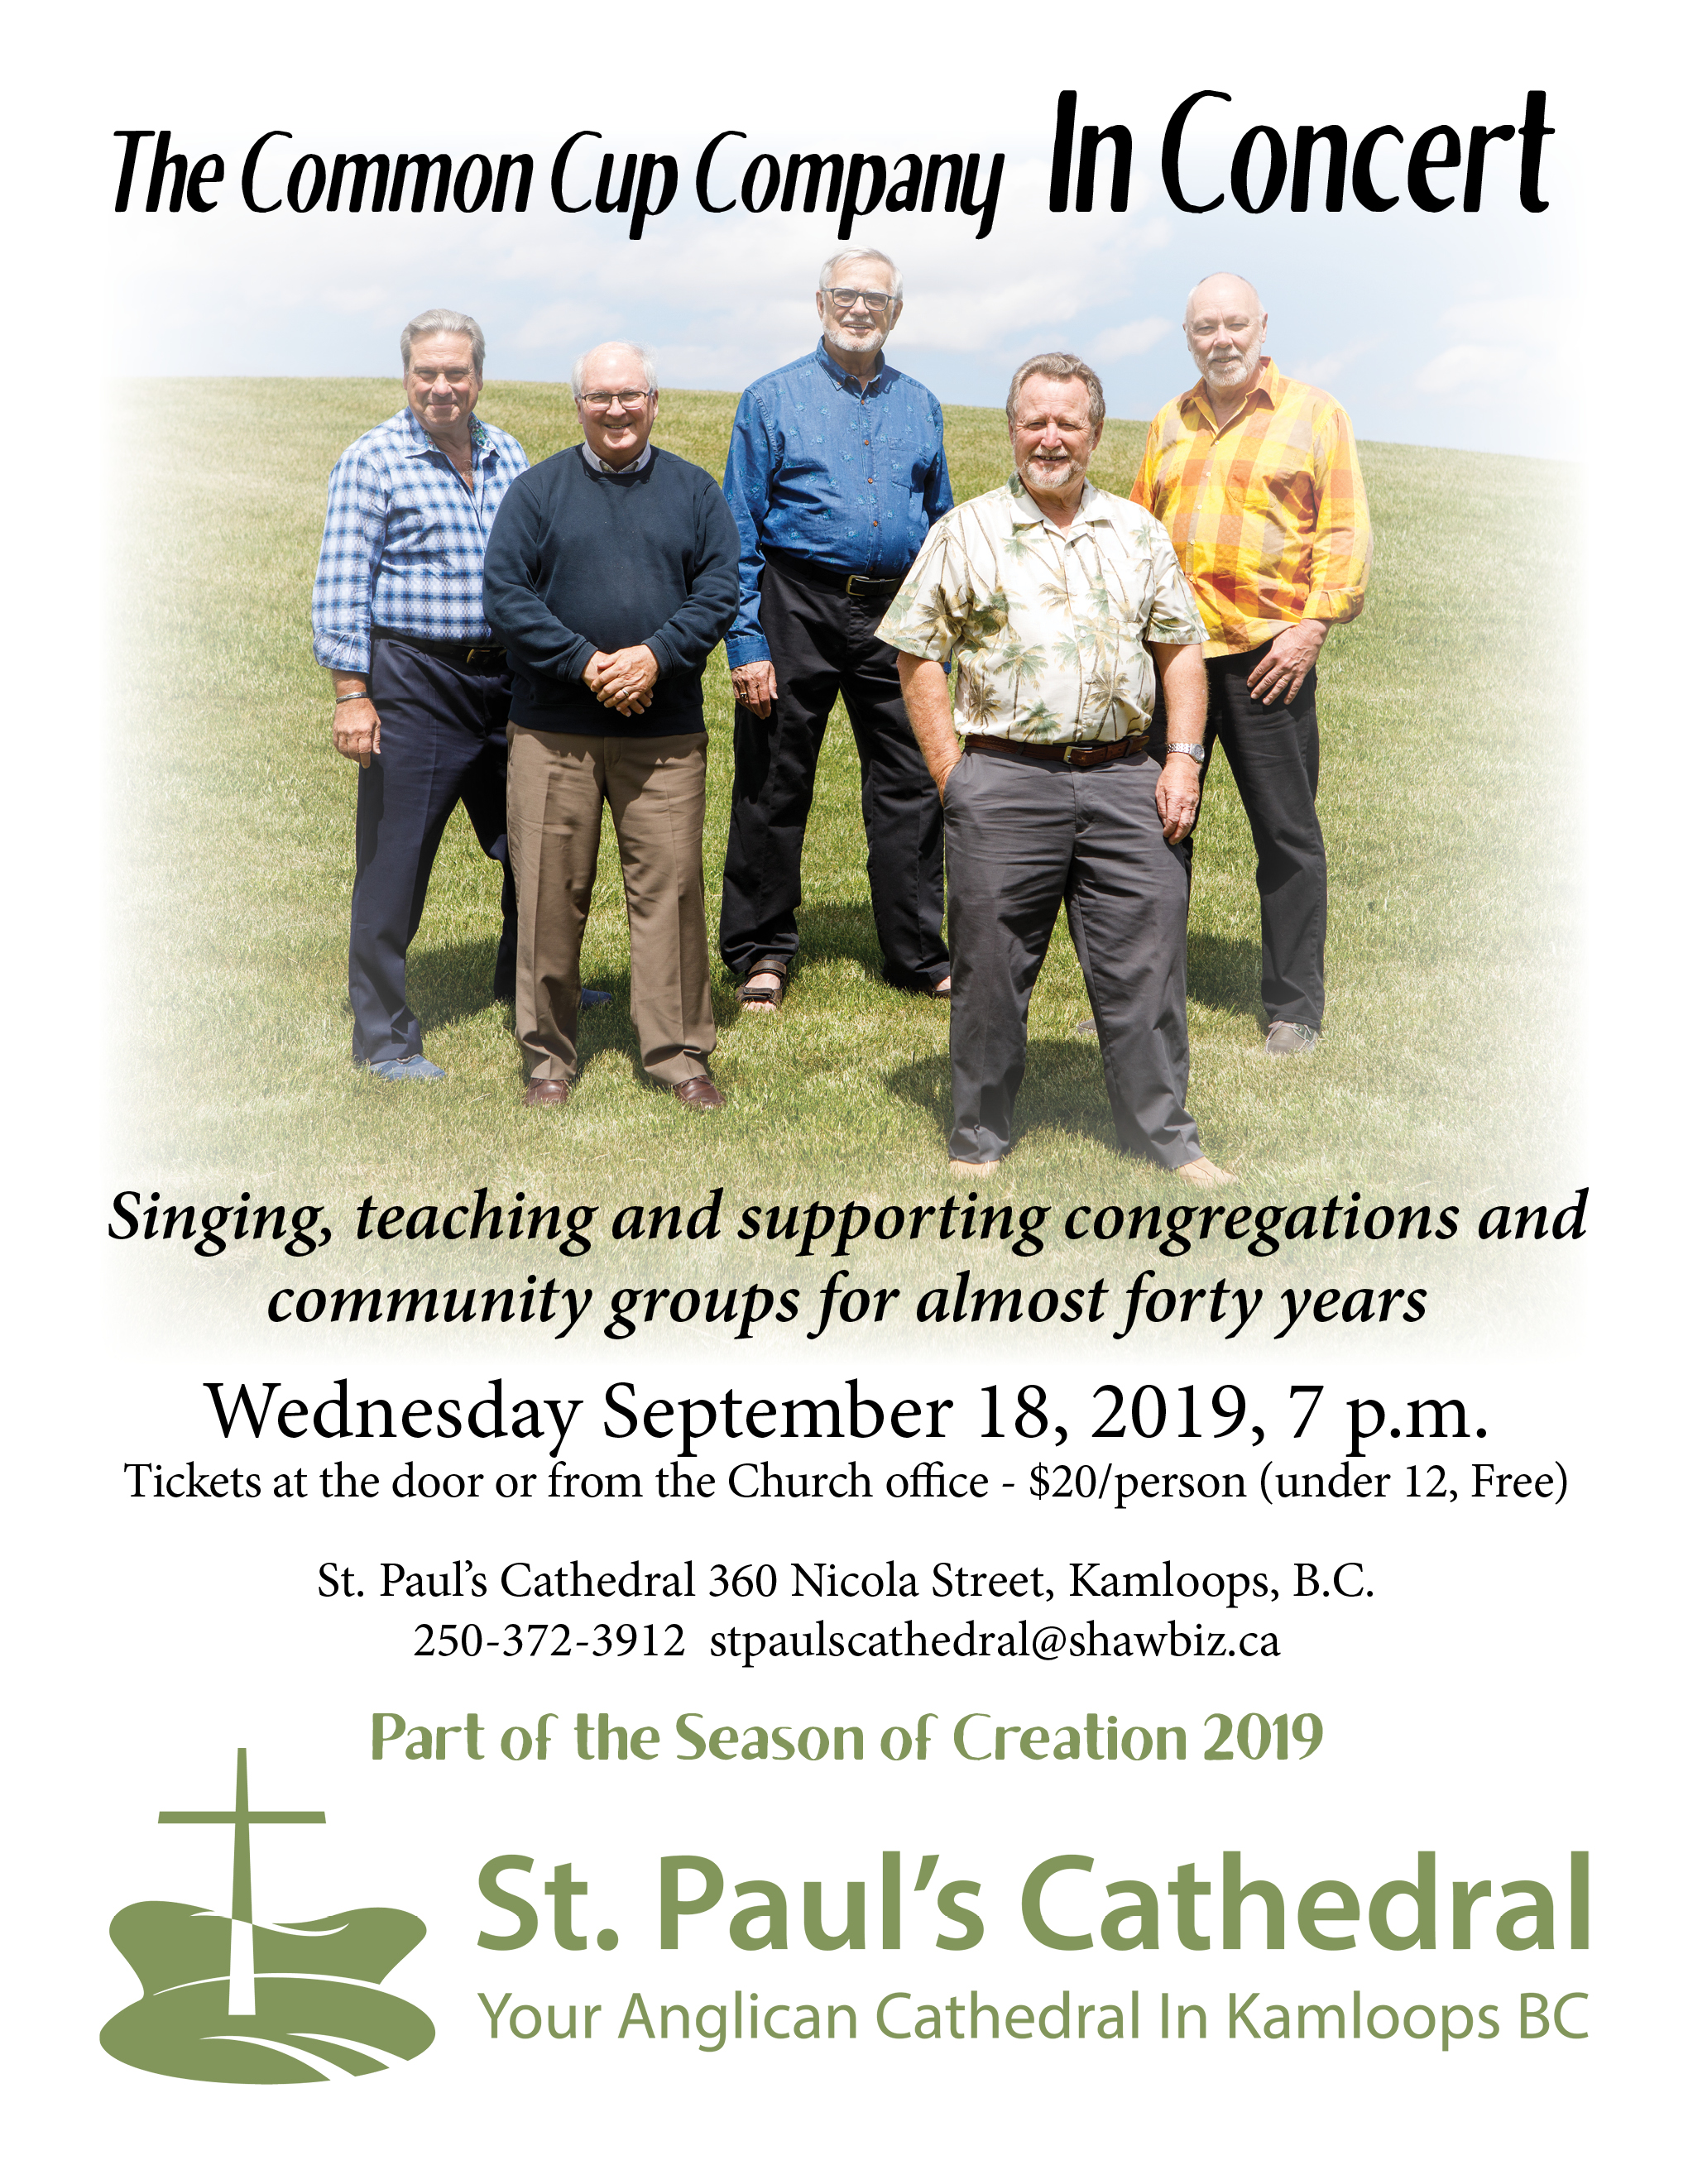 Common Cup Concert, September 18 2019  at 7 pm. Tickets at the door  or office $20. St. Paul's Cathedral.